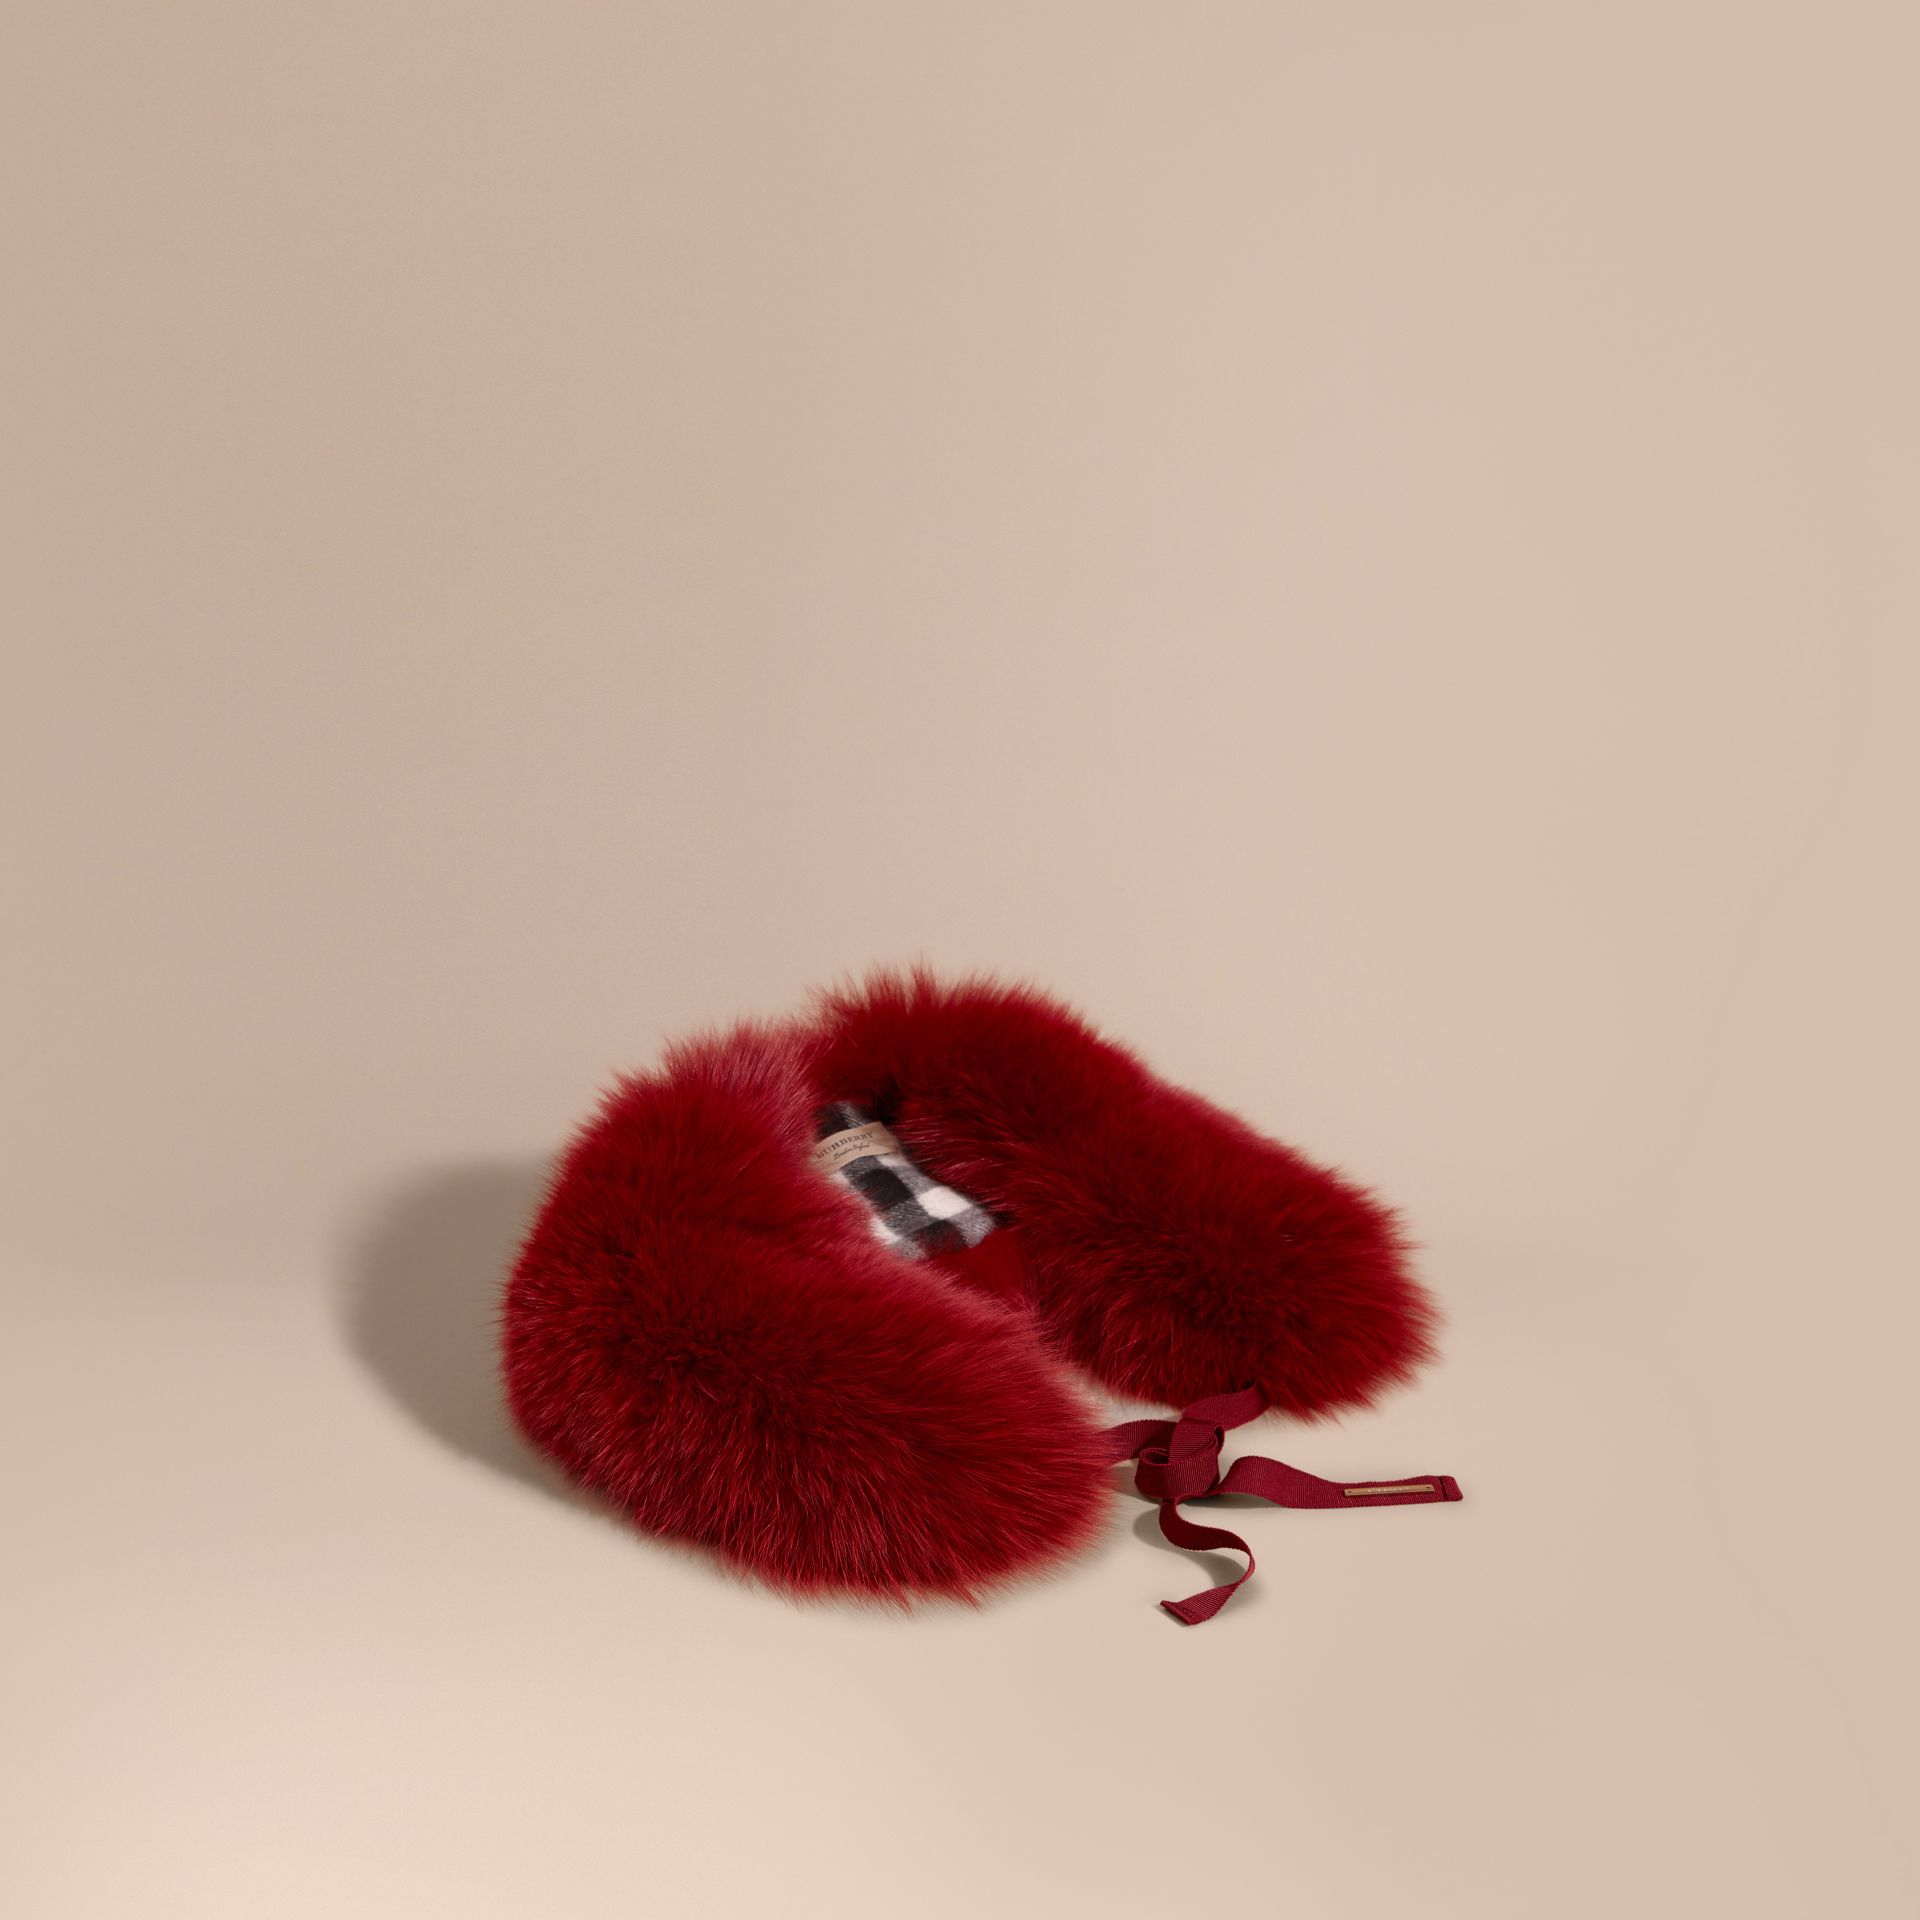 Parade red check Fox Fur Collar with Check Cashmere Lining Parade Red - gallery image 1